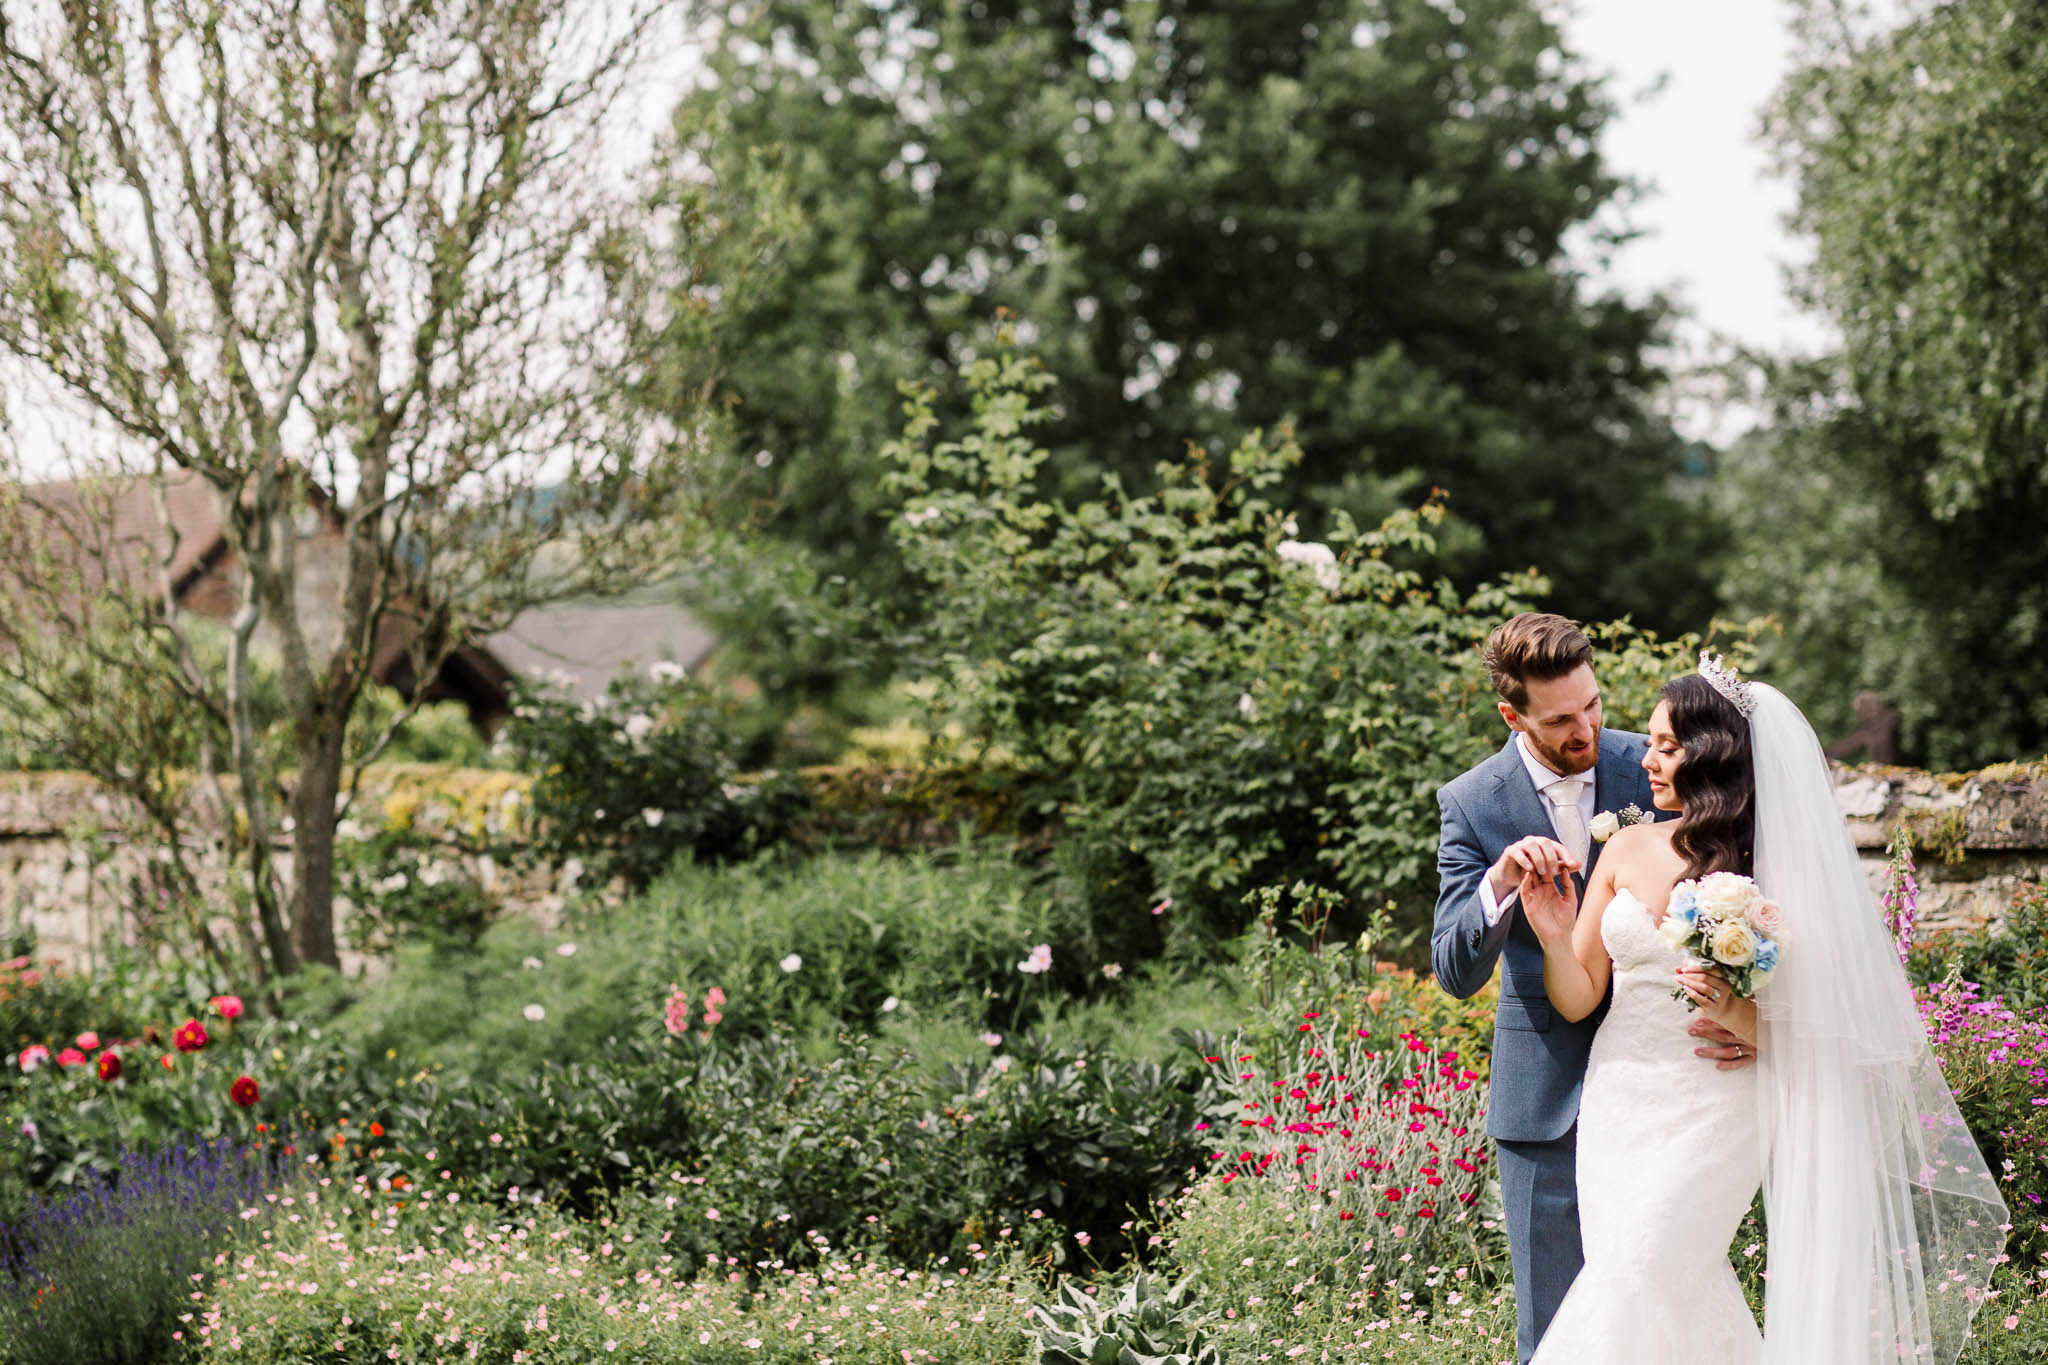 bride and groom romantic portrait at brewerstreet farmhouse wedding